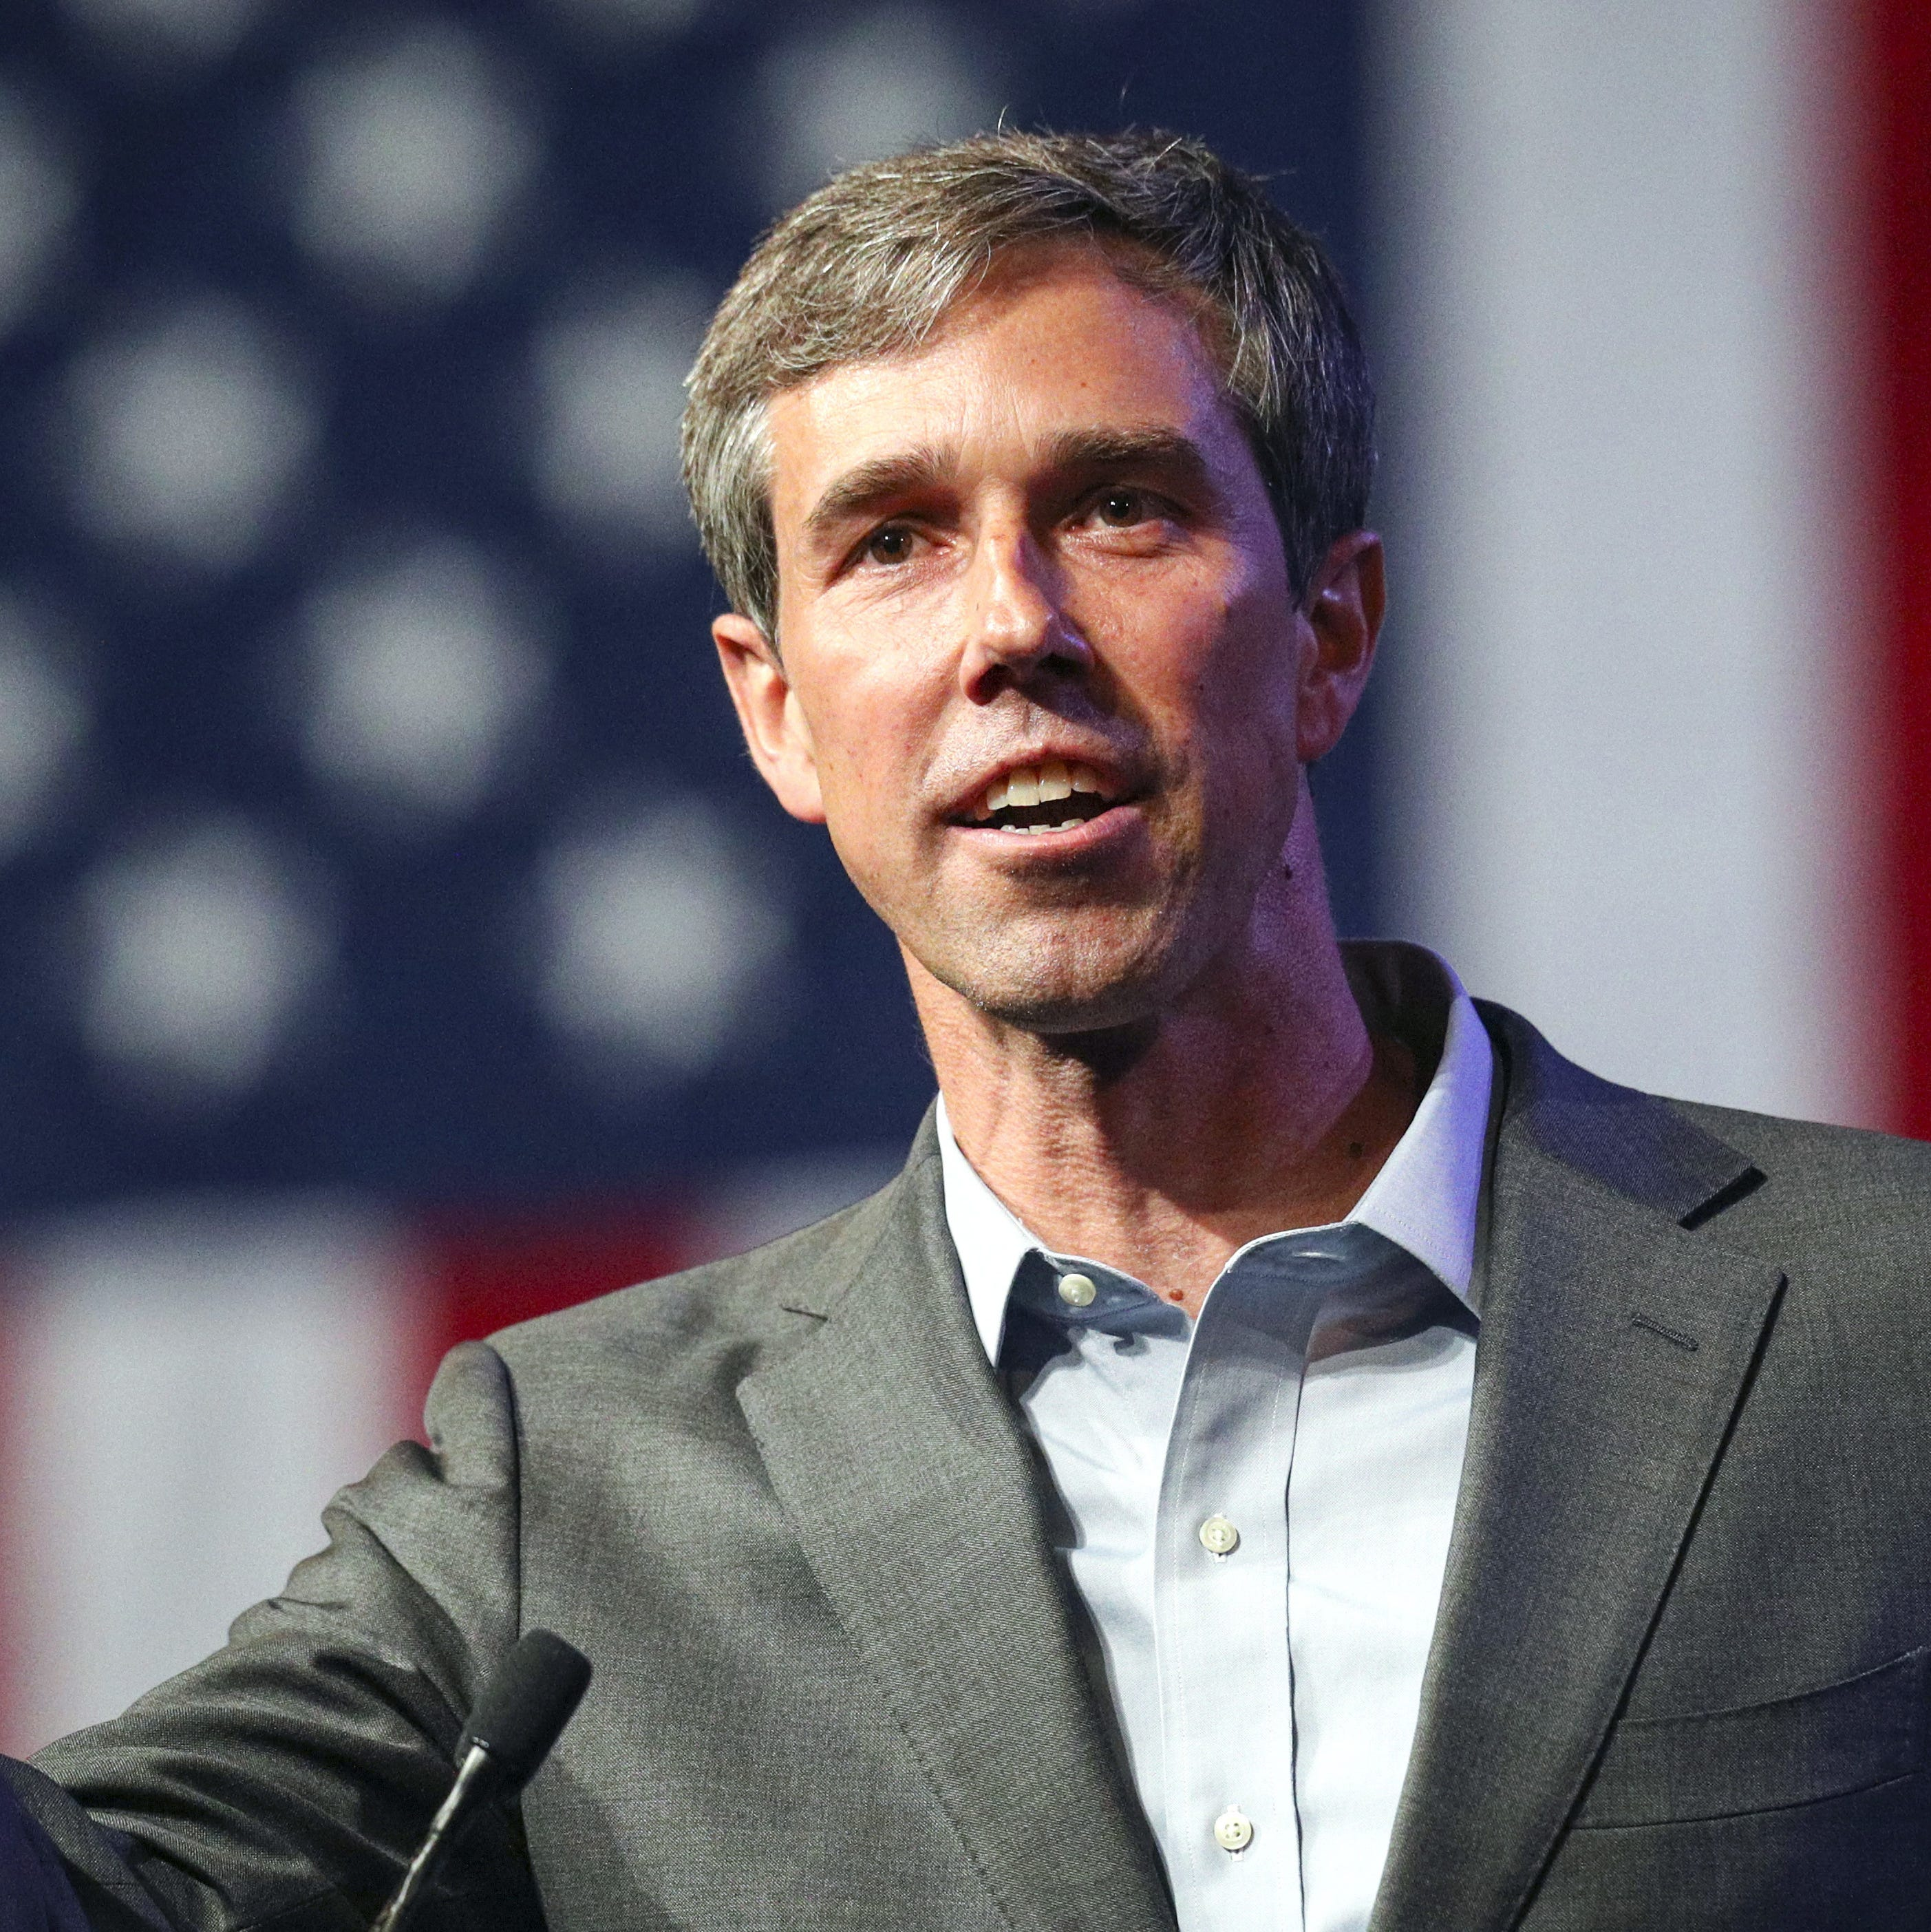 An open letter to Beto O'Rourke: Reader